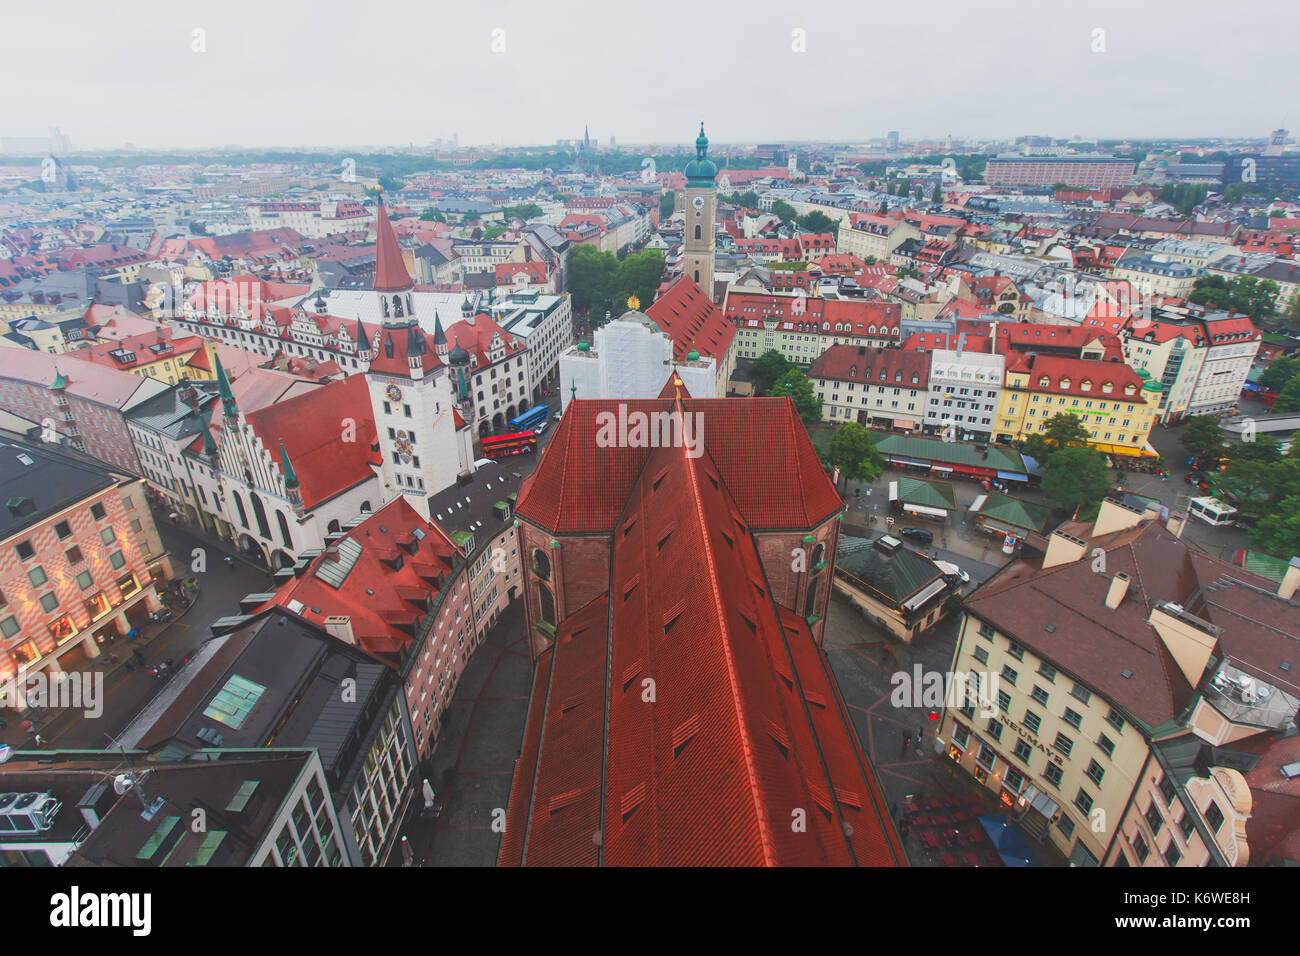 Beautiful super wide-angle sunny aerial view of Munich, Bayern, Bavaria, Germany with skyline and scenery beyond the city, seen from the height - Stock Image